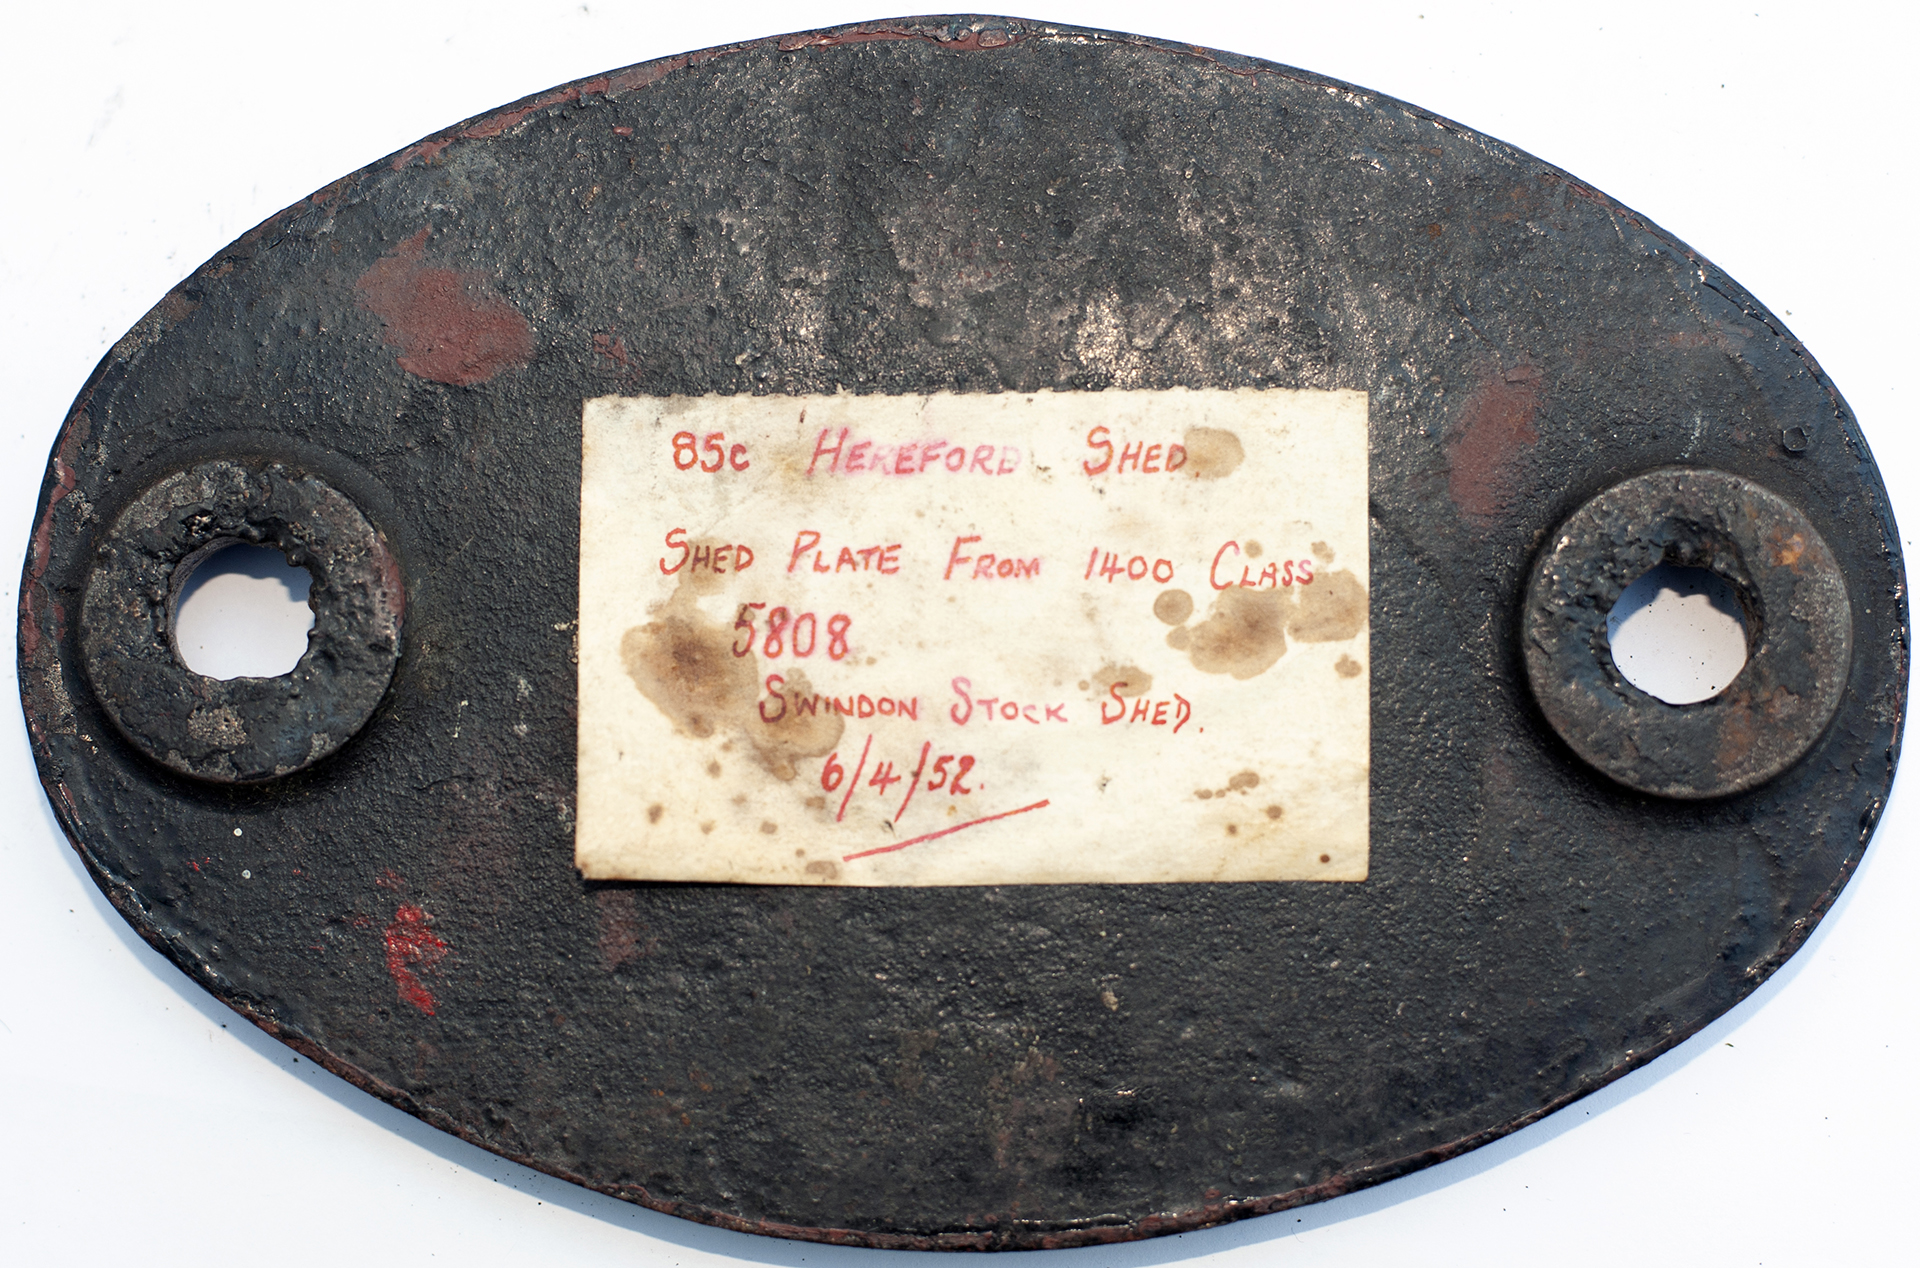 Shedplate 85c HEREFORD 1950-1961 With Sub-Sheds